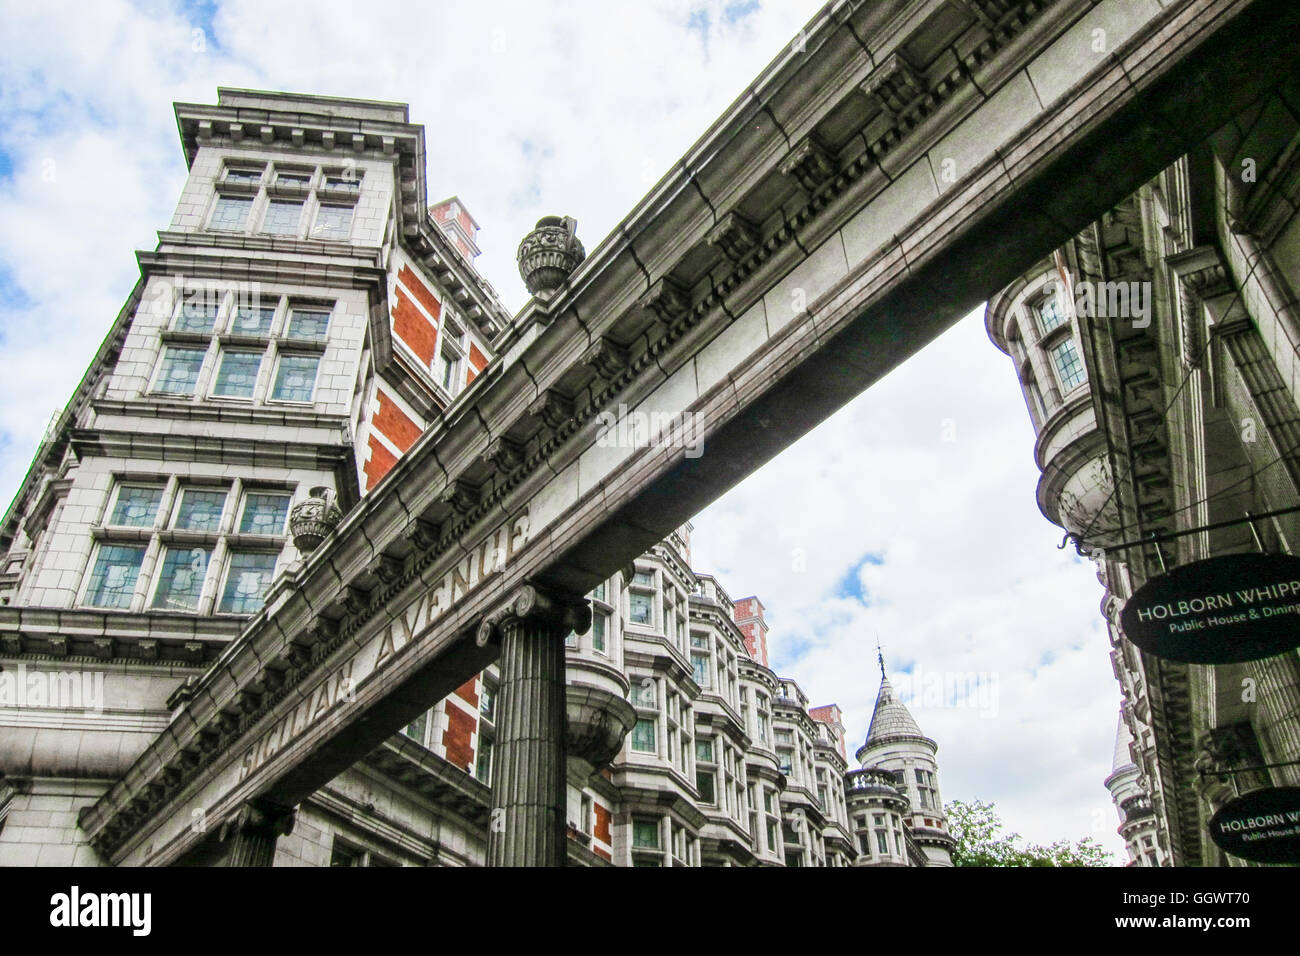 Sicilian Avenue is a beautiful pedestrian shopping street in the  Holborn district of central London, UK - Stock Image